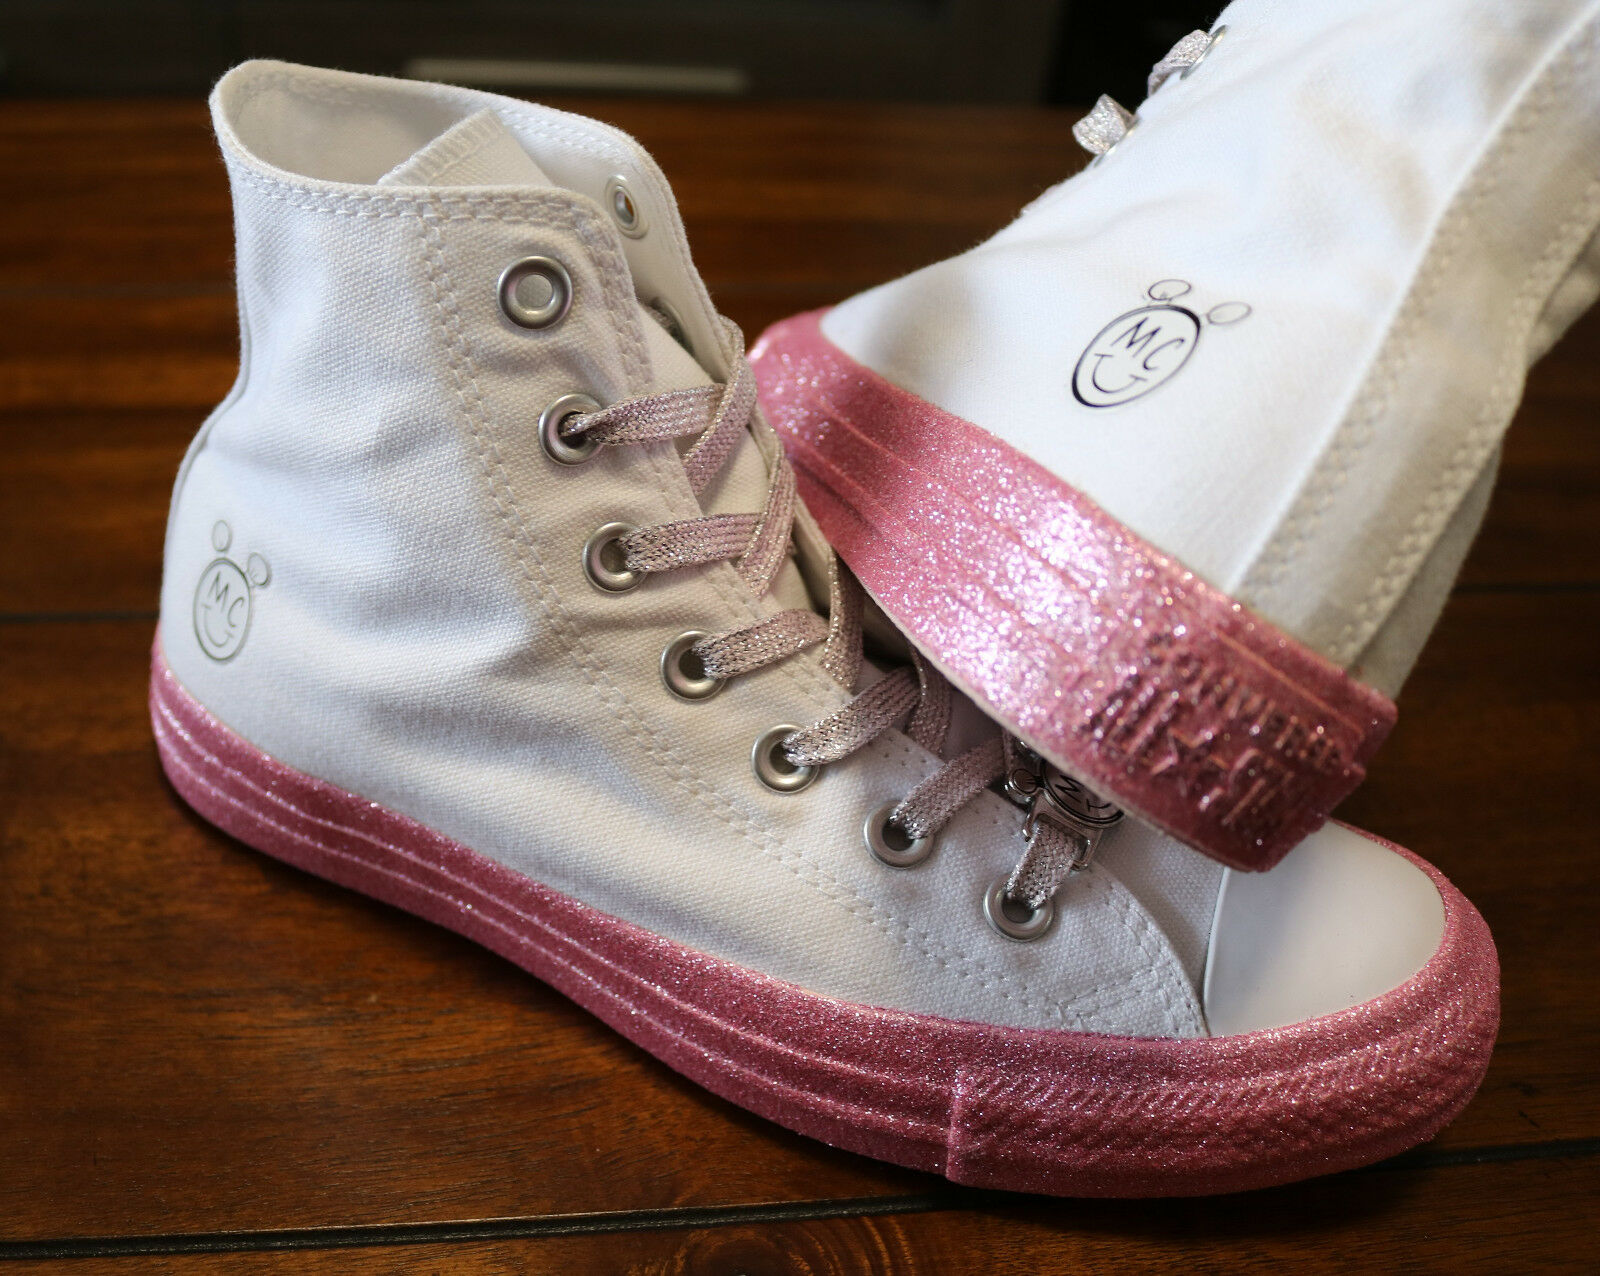 02b6afe7da3af2 Womens Converse x Miley Cyrus Chuck Taylor All Star Glitter High Top White  Pink